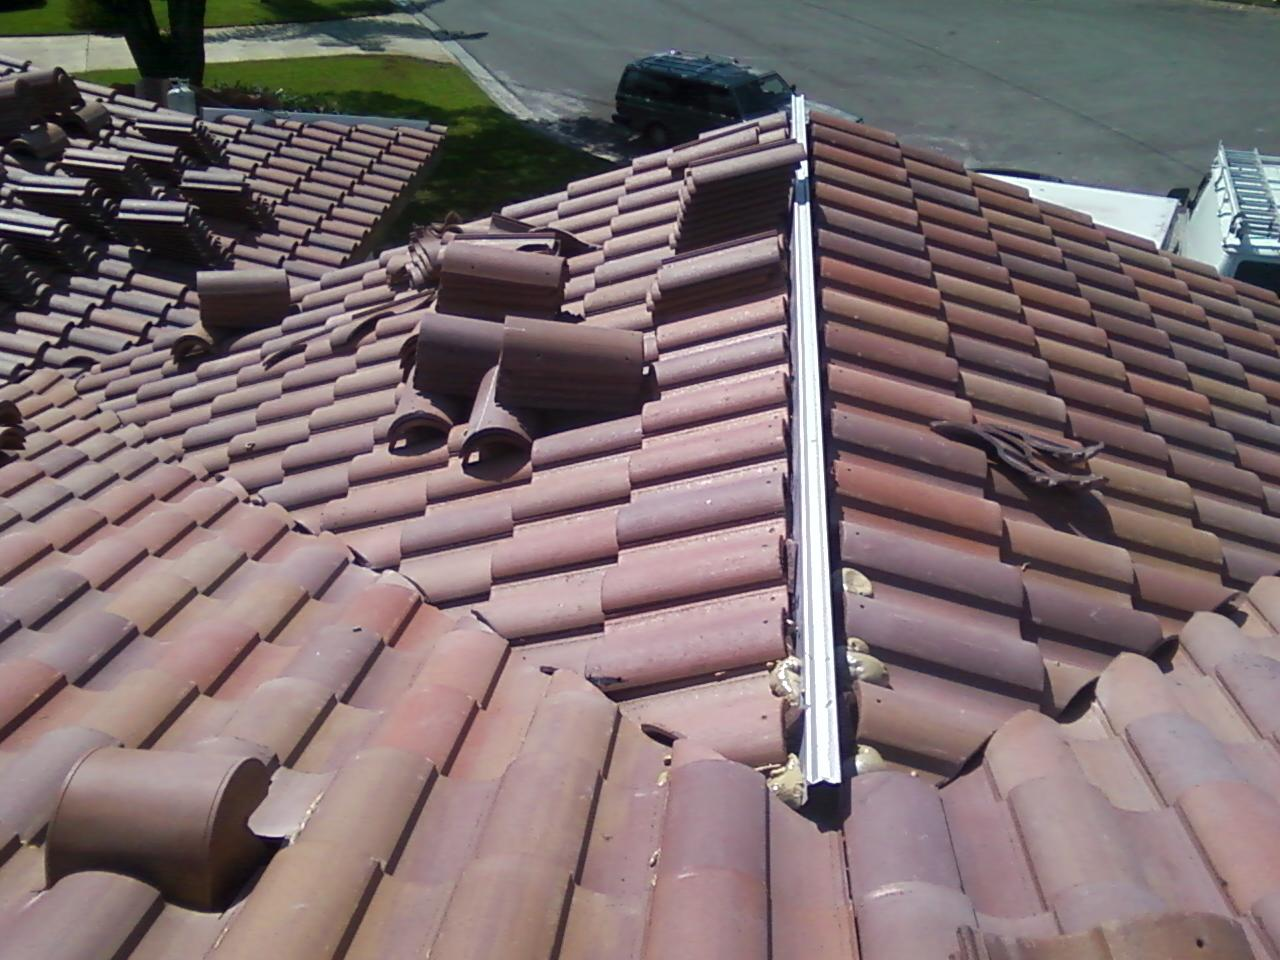 Tile Roof Work - Under Construction